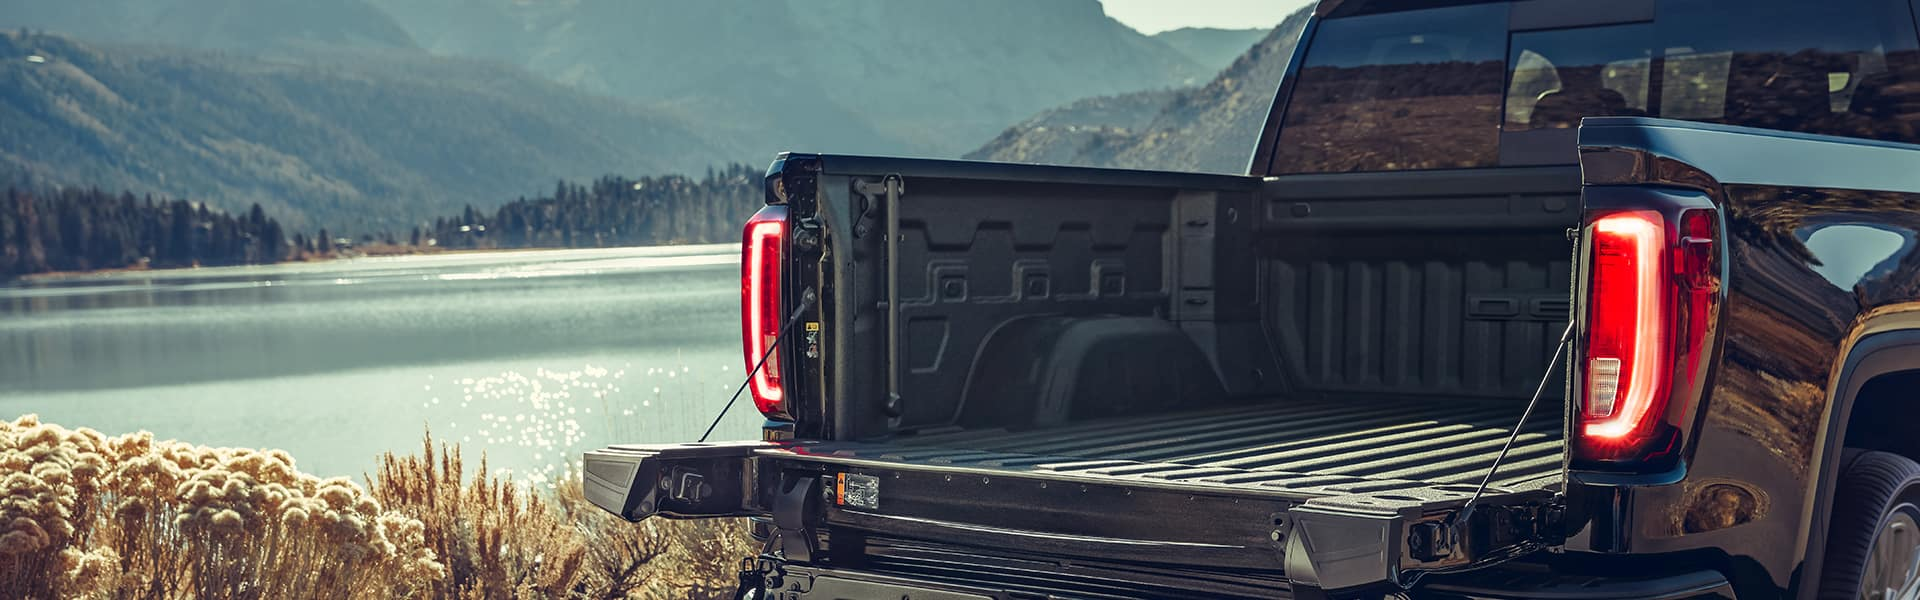 Performance features of the 2021 Sierra at Jack Giambalvo Buick-GMC of York | Open tailgate of the 2021 GMC Sierra parked by a lake